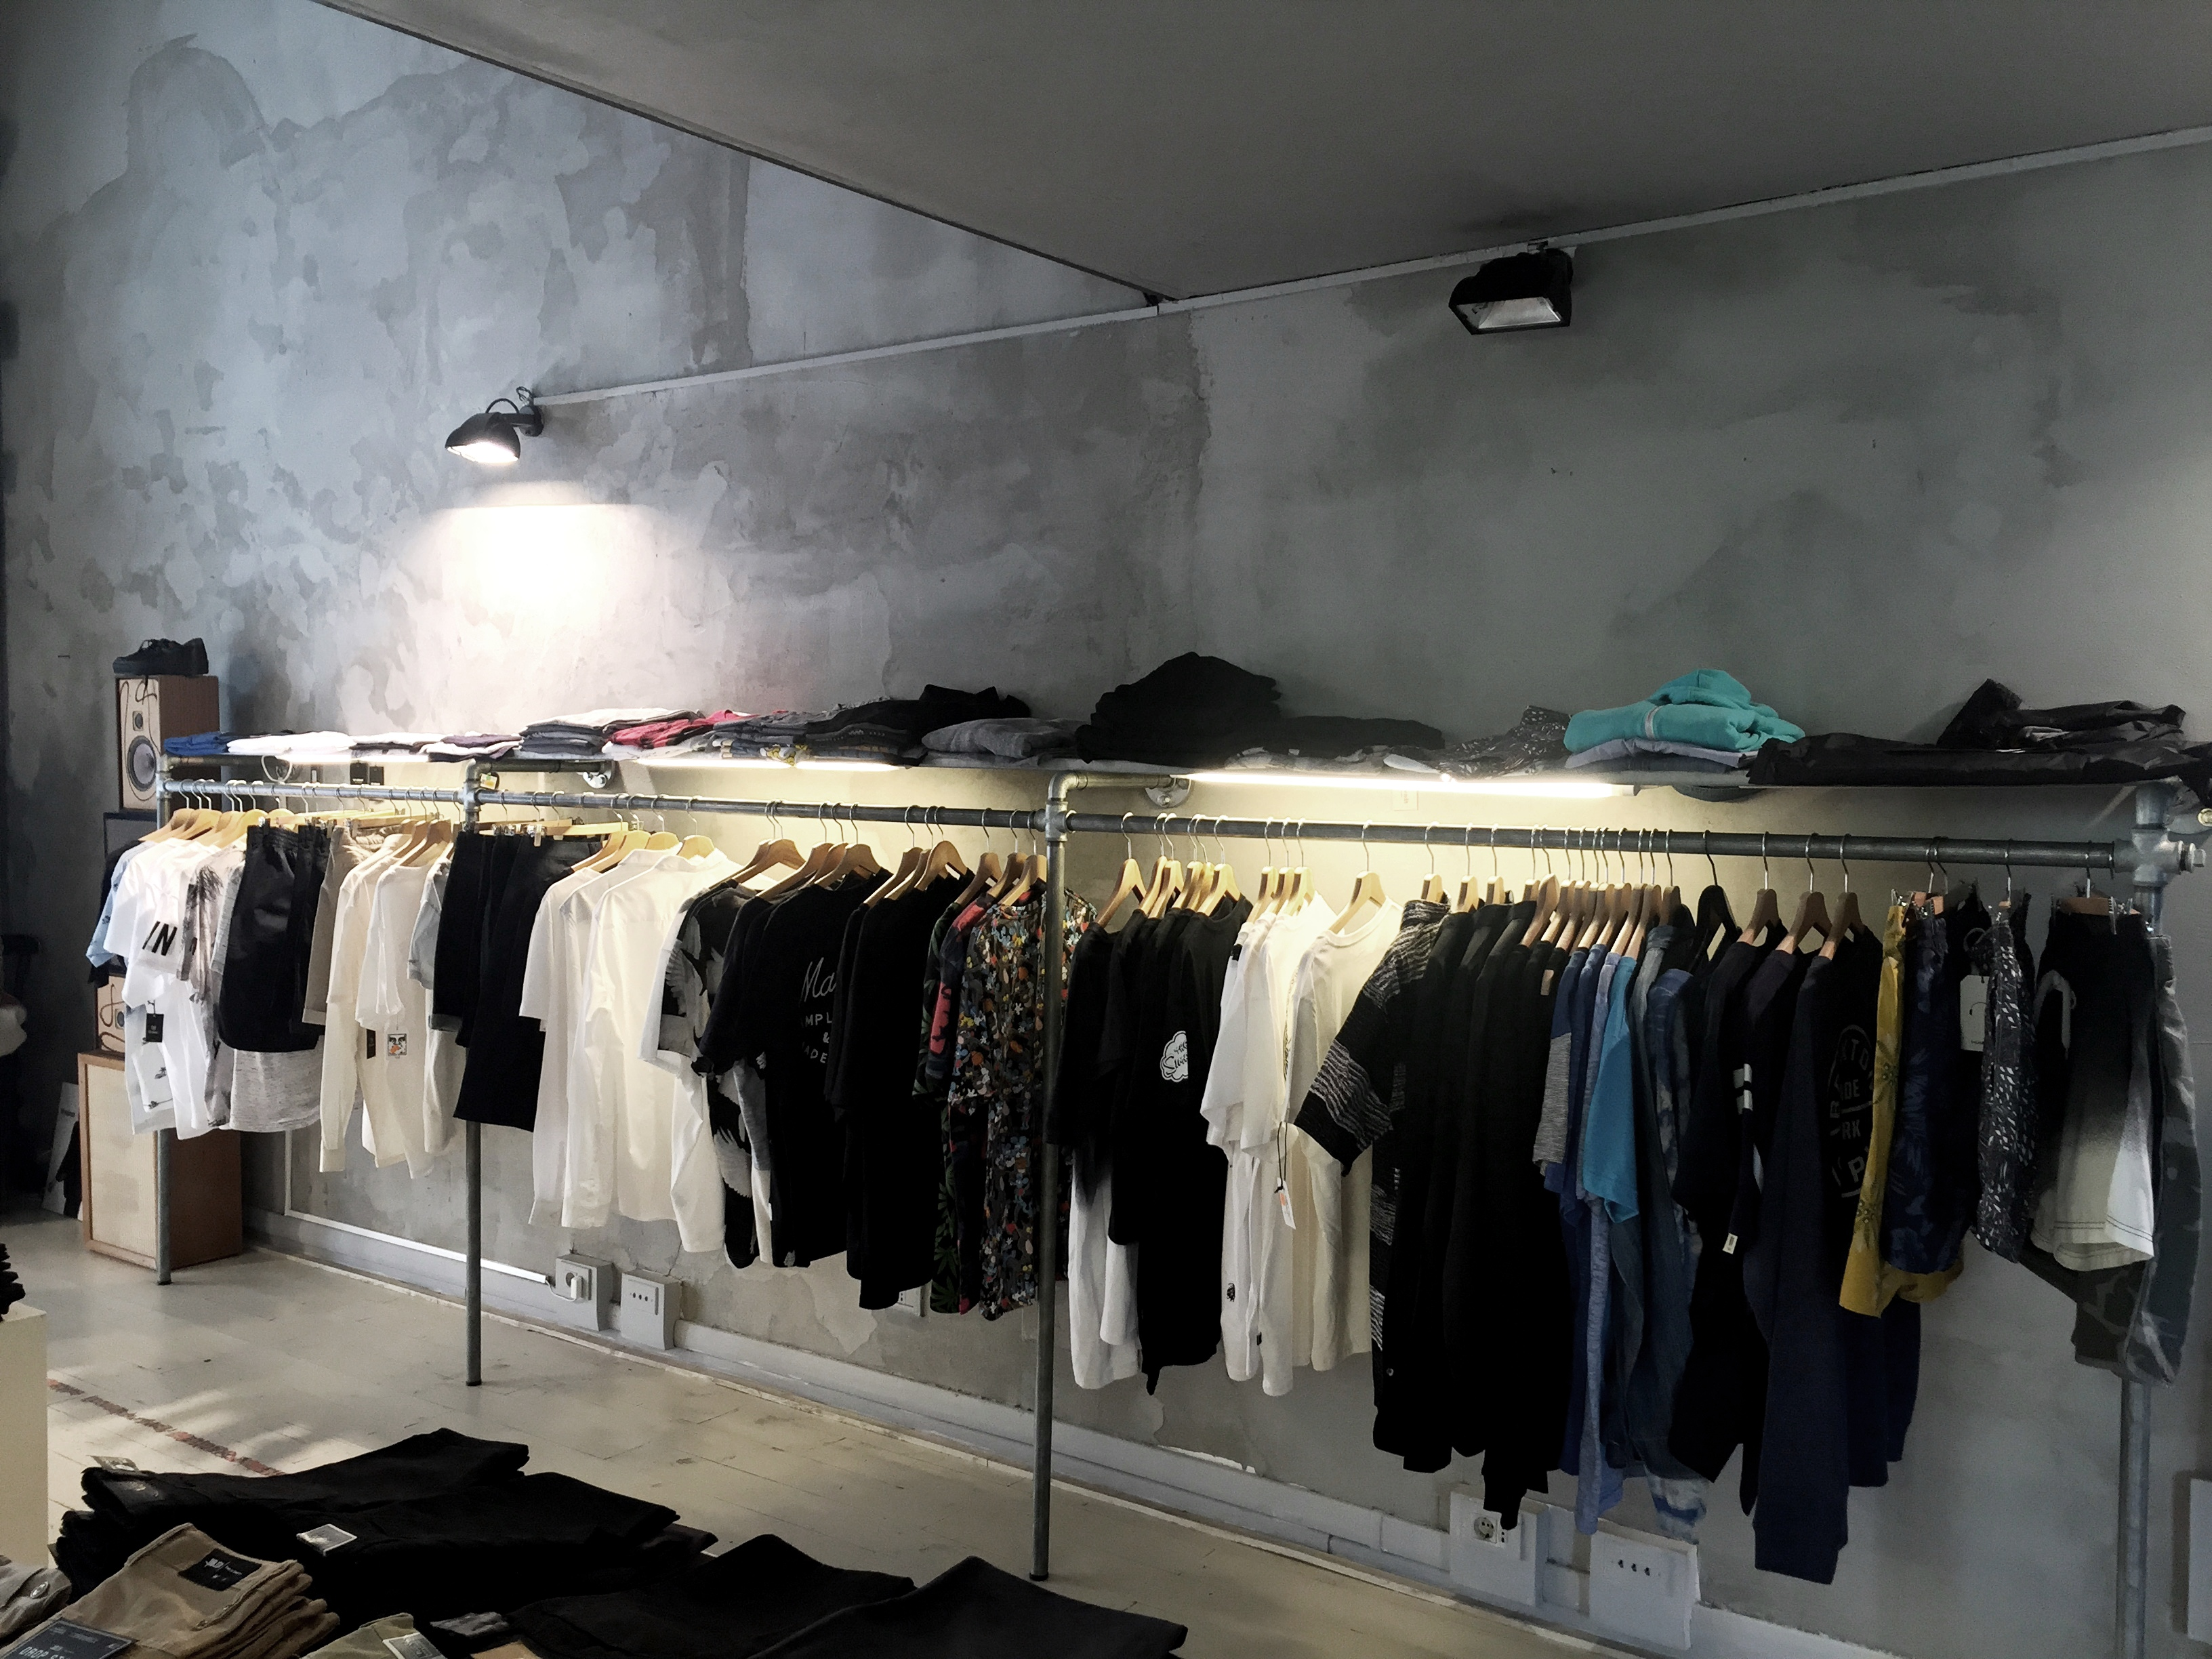 Tortona 5 - Loft, Negozio, Showroom di 50mq in Via Tortona 5 | location disallestita 5